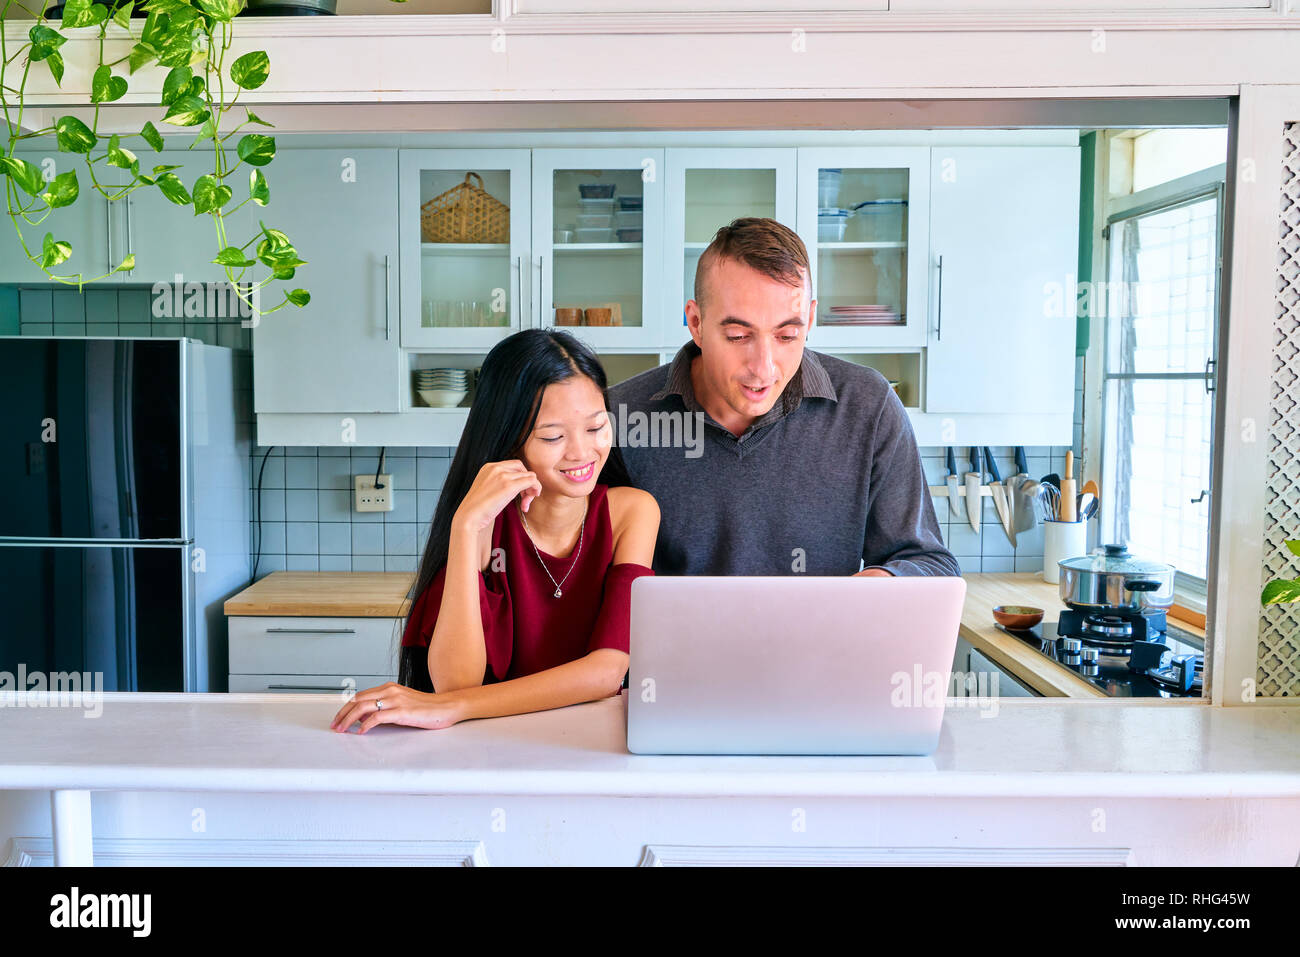 Lovely couple posing - watching movies on laptop and enjoying - Stock Image